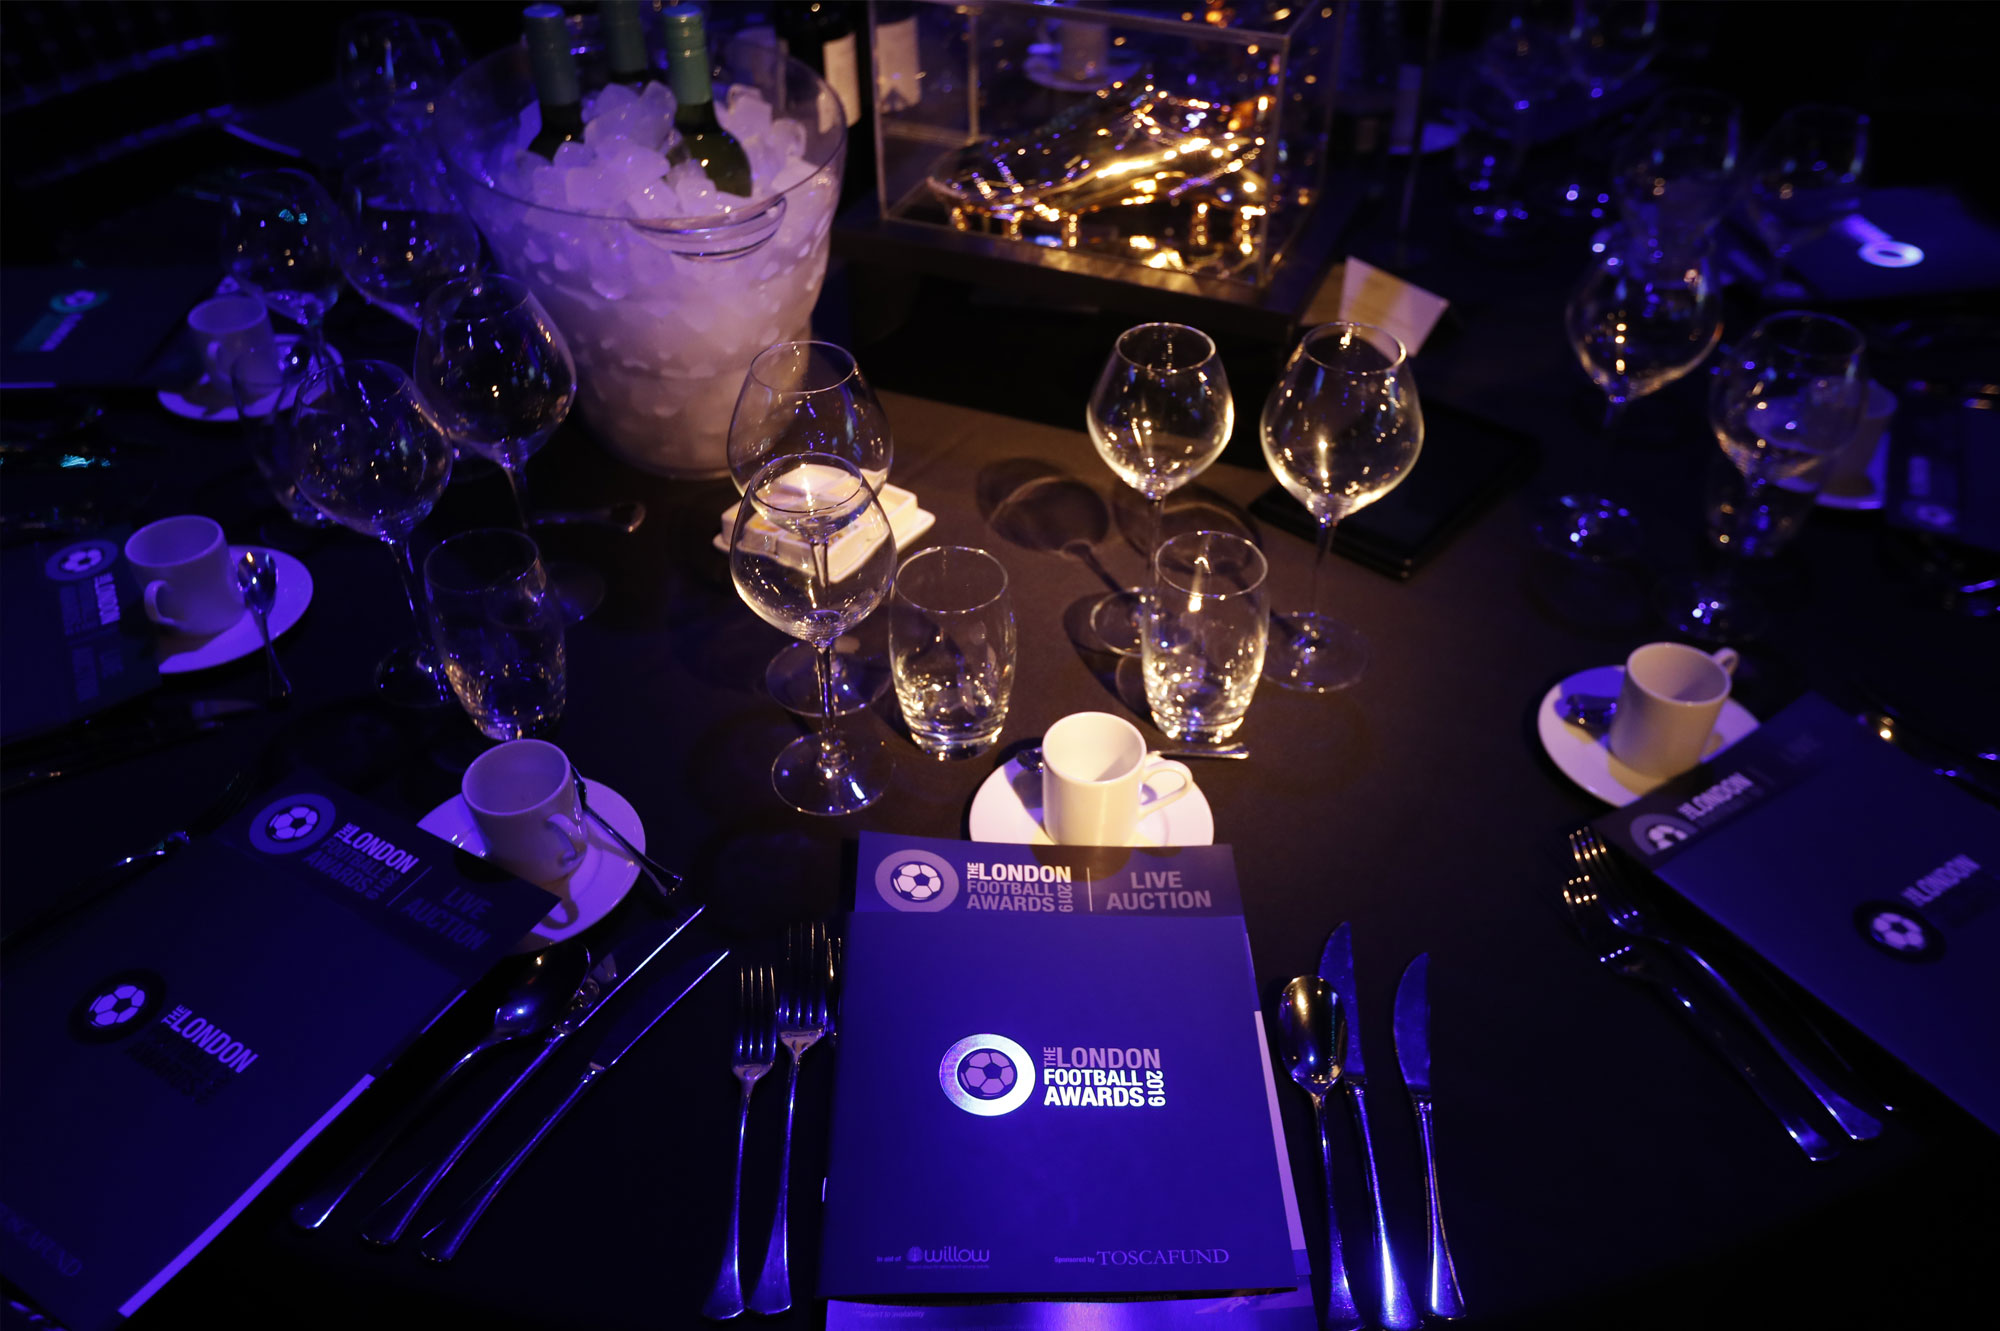 Designing for the London Football Awards 2019 - Cove Design